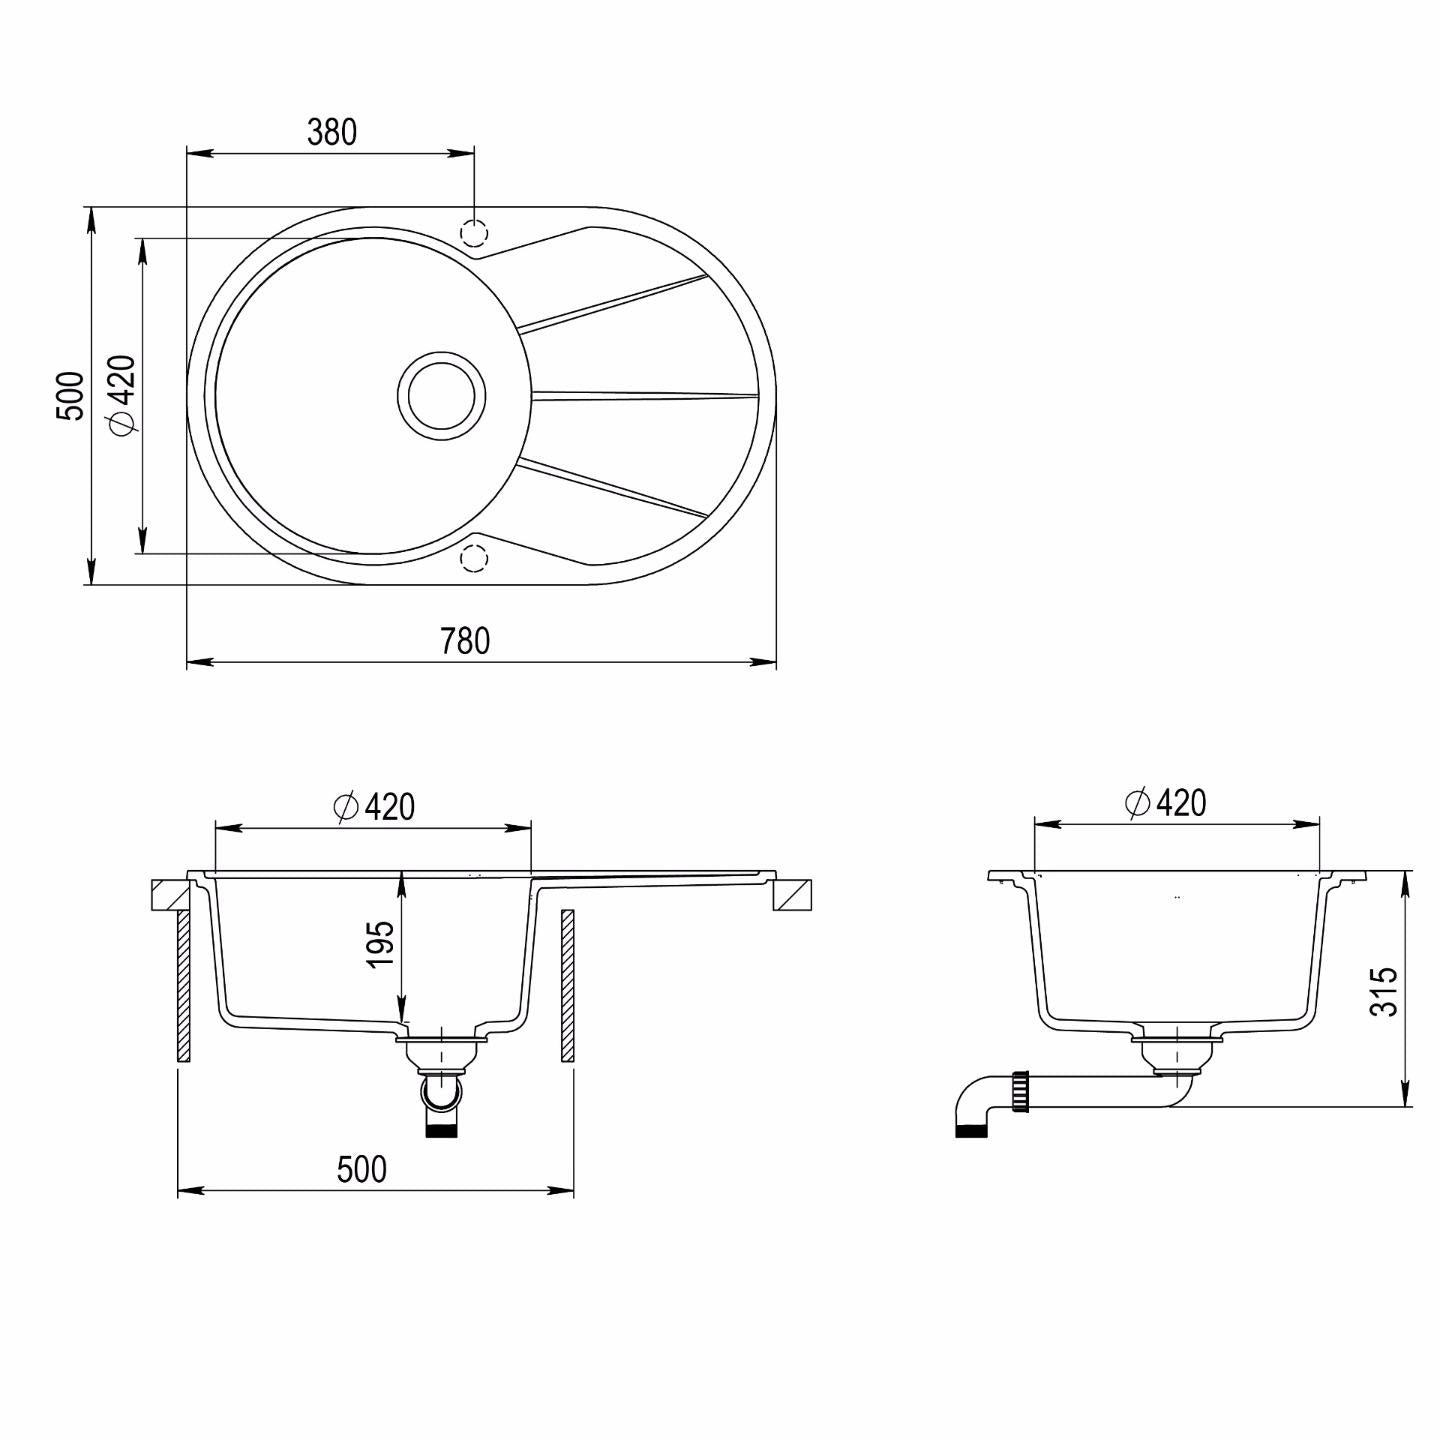 780 x 500mm Reversible Round Single Bowl Inset Composite Sink with Drainer CS009